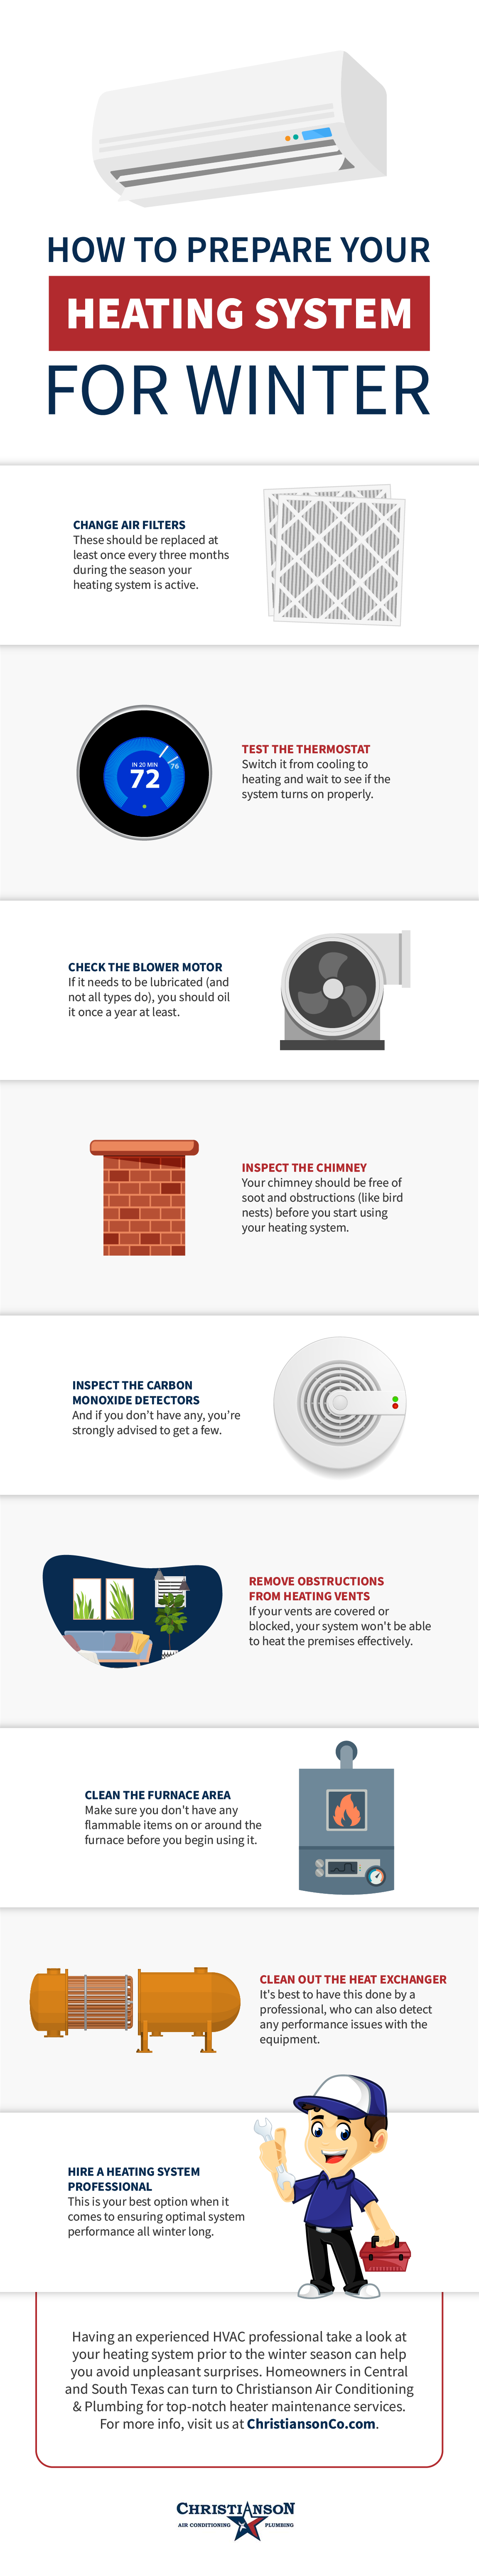 How to Prepare Your Heating System for Winter Infographic